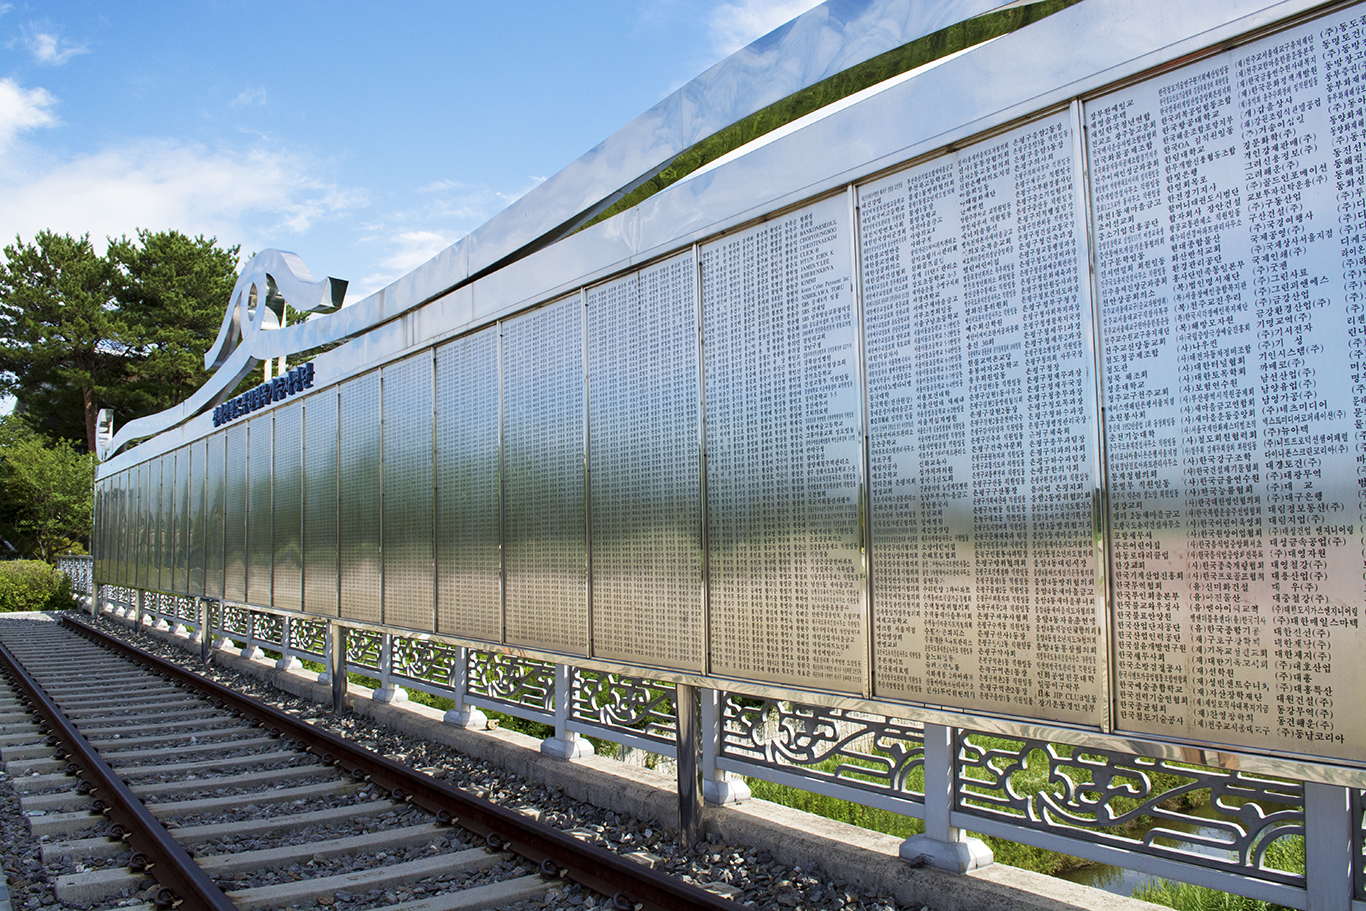 A memorial to the lengthy list of contributors who donated towards the construction of Dorasan station in the Korean DMZ. The station was built as a part of an initiative to link the two Koreas through the old Gyeonggui Railroad line. (CHRISTOPHER CAMERON/THE STATESMAN)